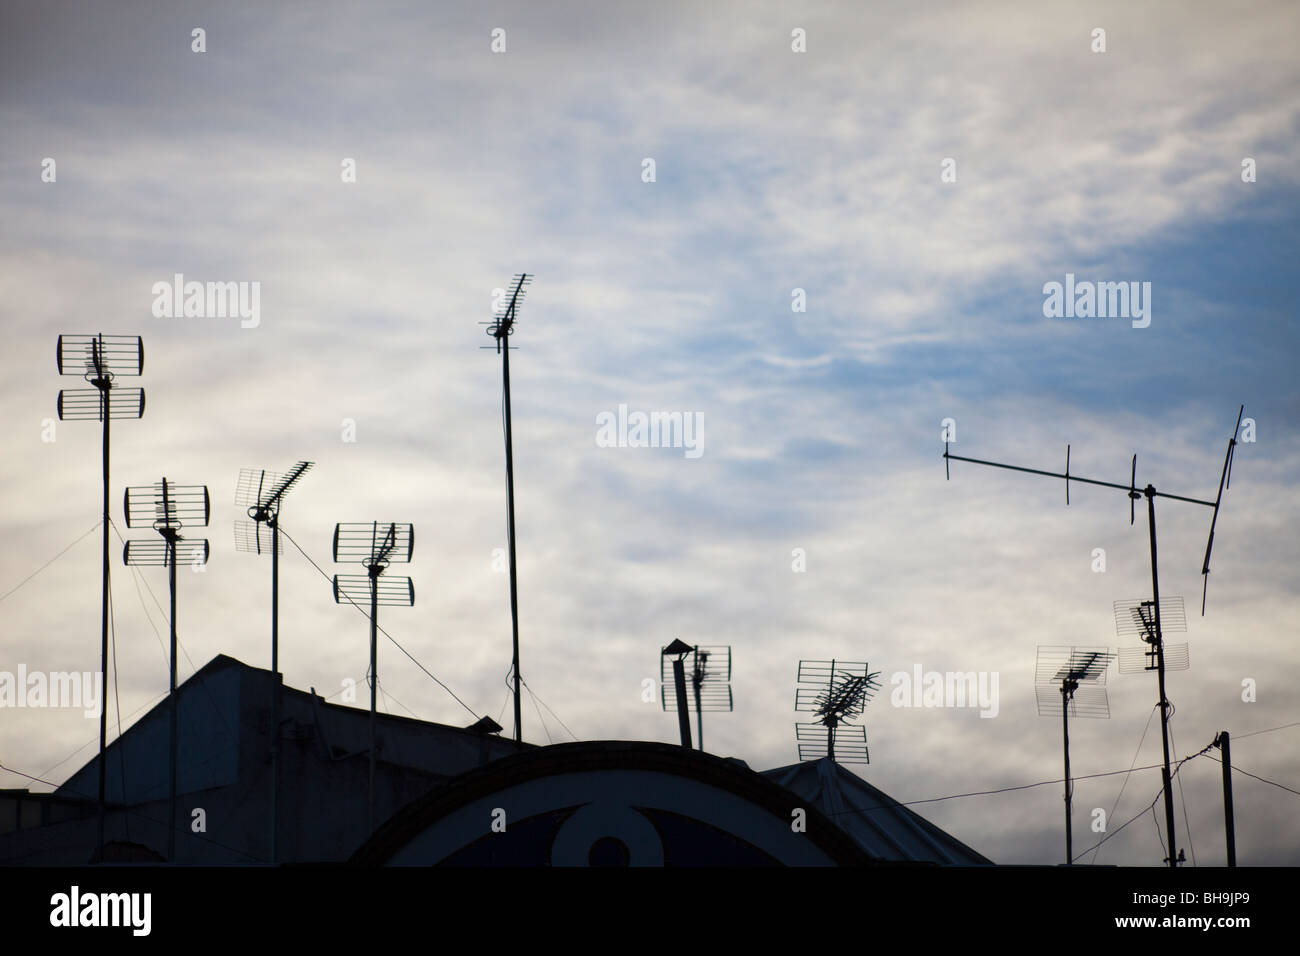 television aerials, central Seville, Andalusia, Spain - Stock Image